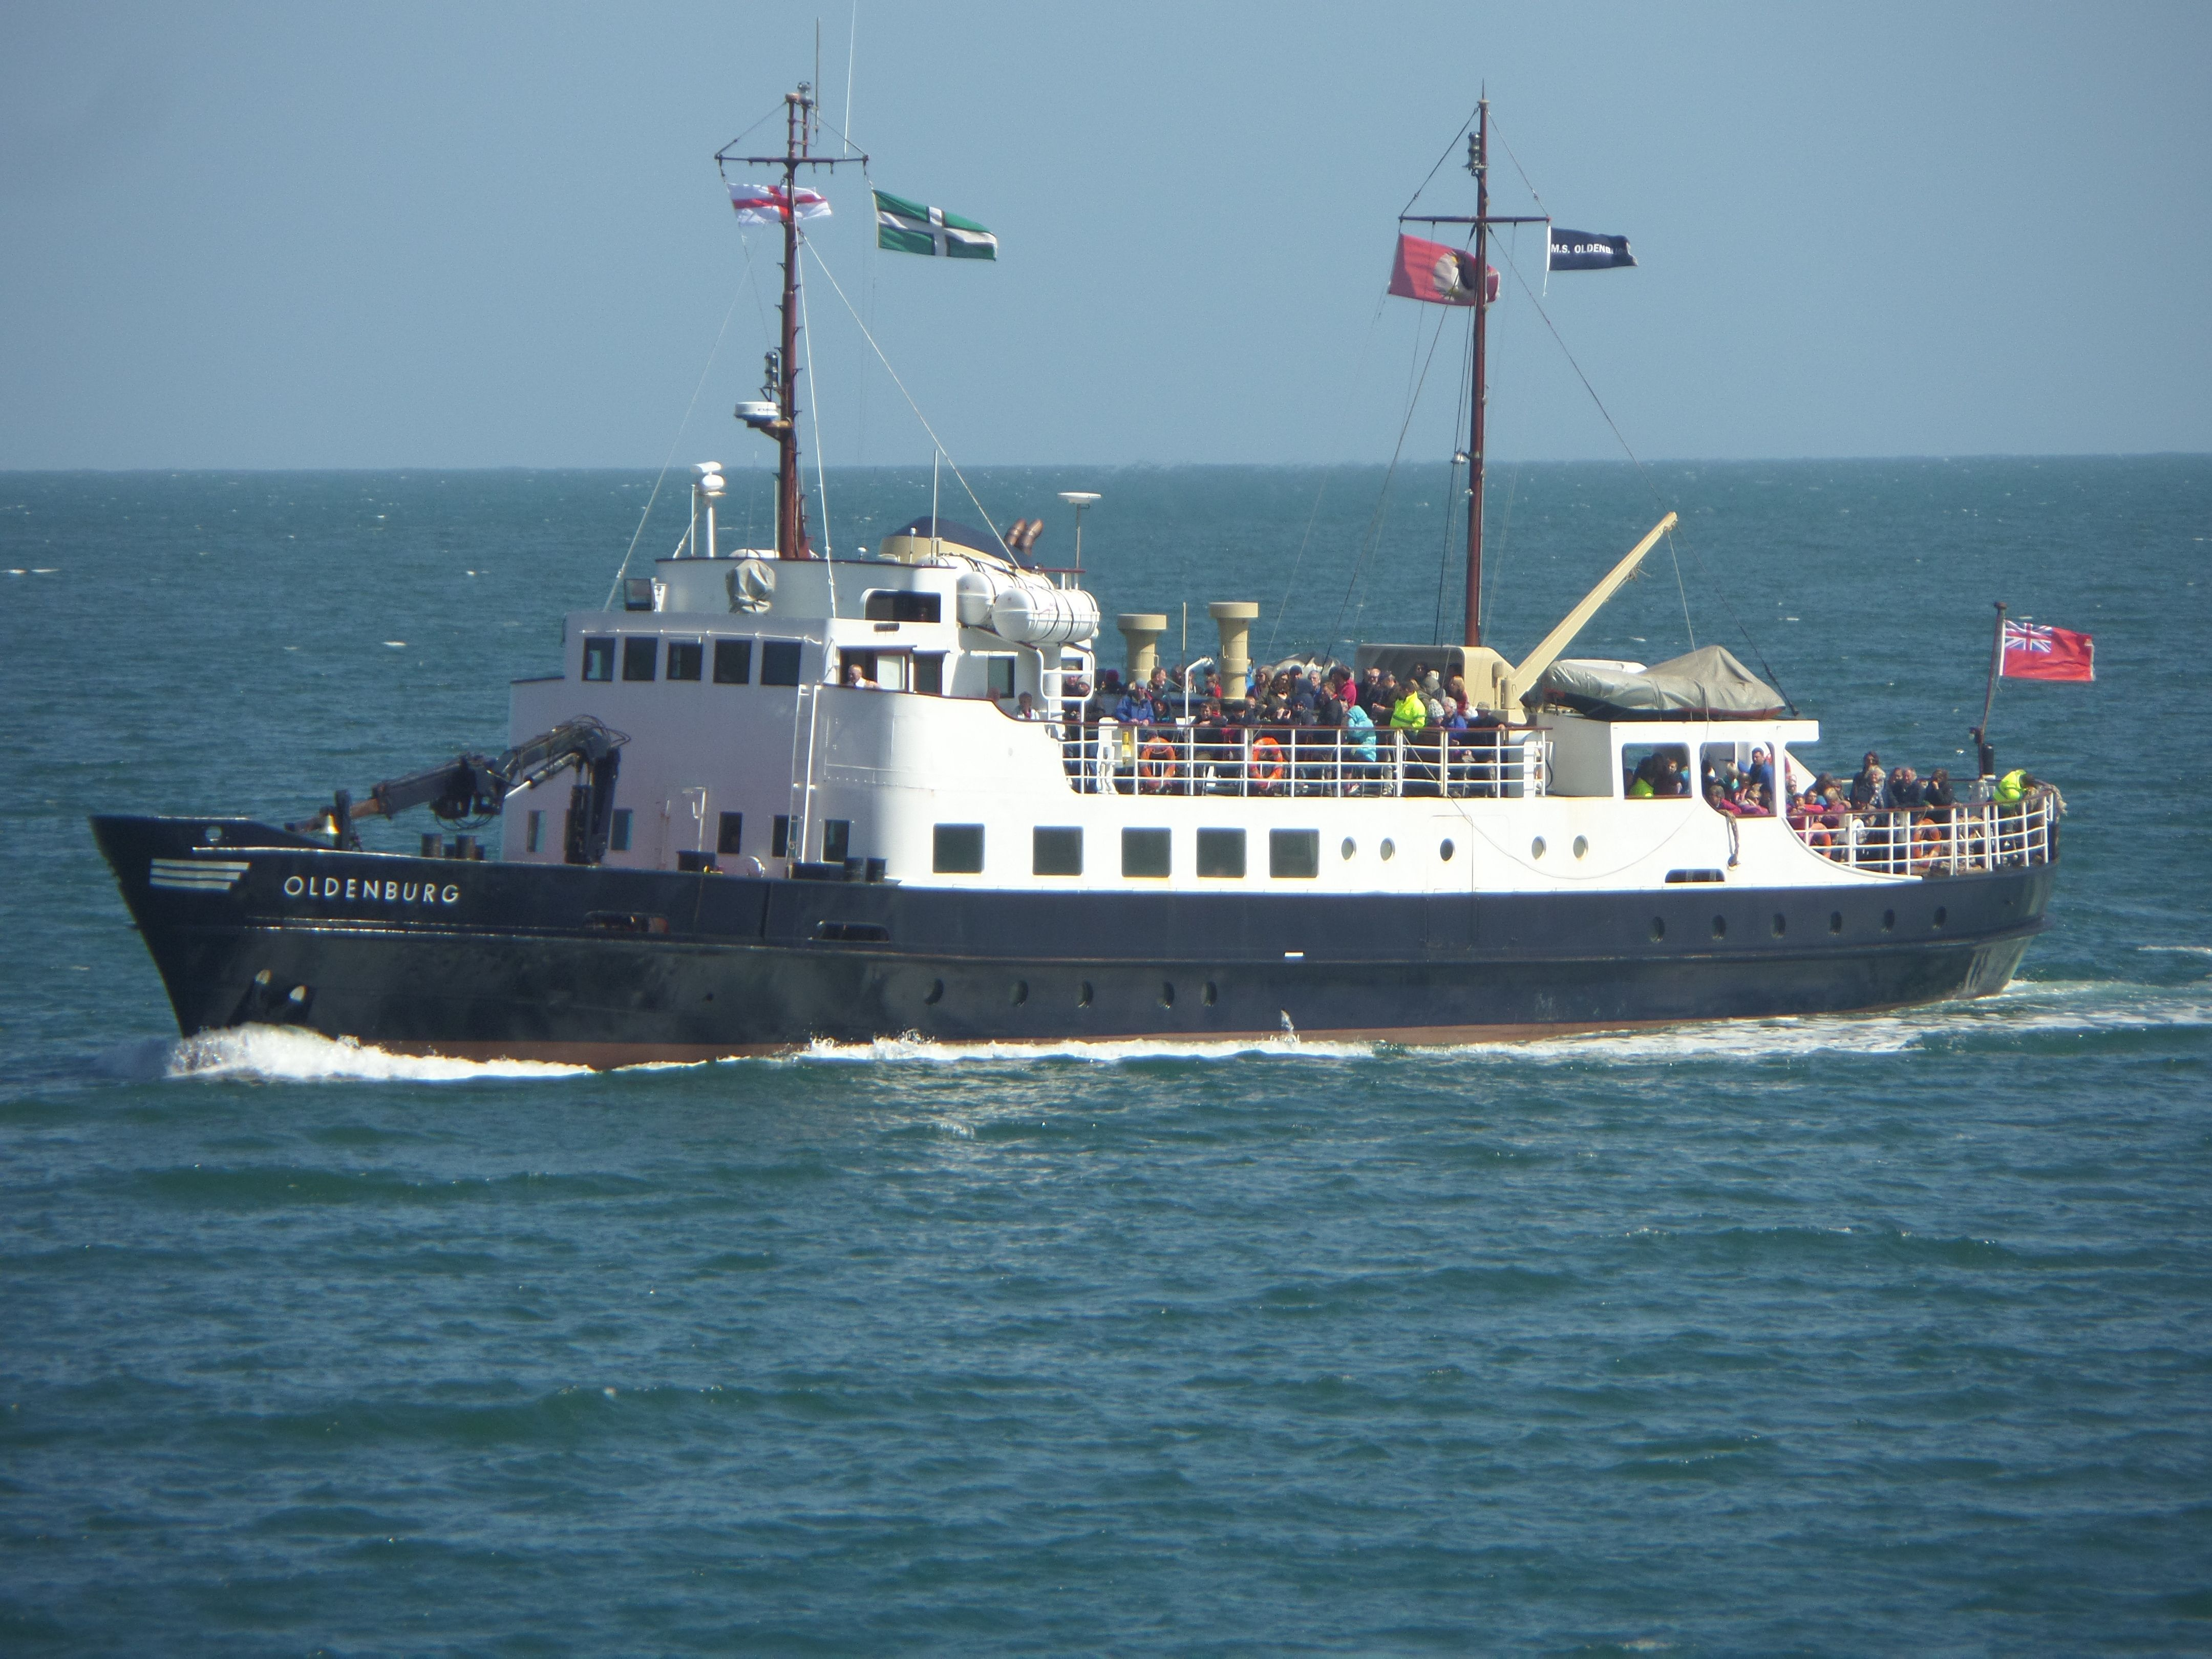 The MS Oldenburg ferries people to Lundy for the Golden Weekend.